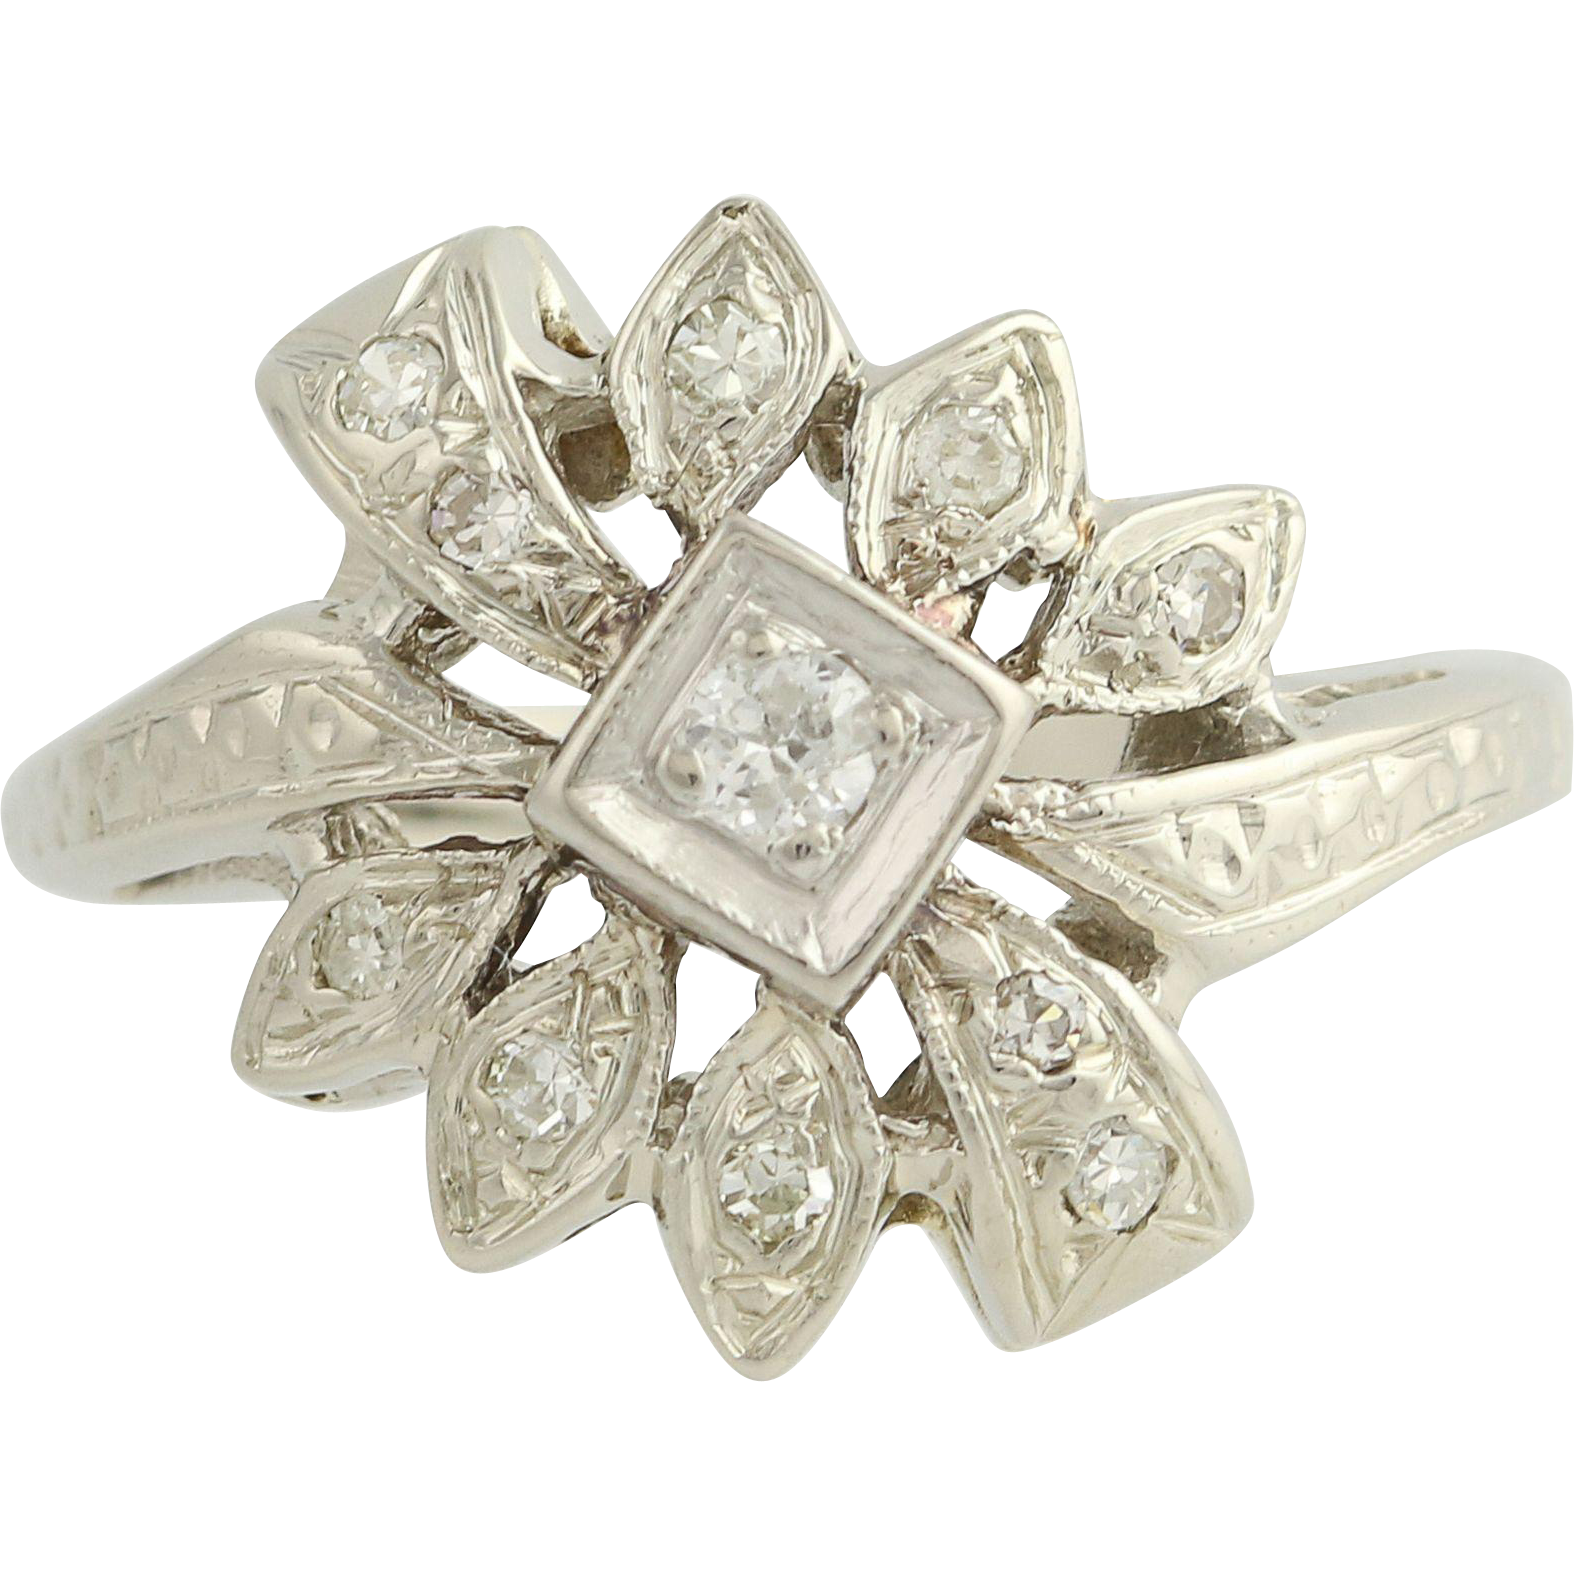 Retro Diamond Flower Style Ring - 14k White Gold 1940s-50s Women's 0.16ctw